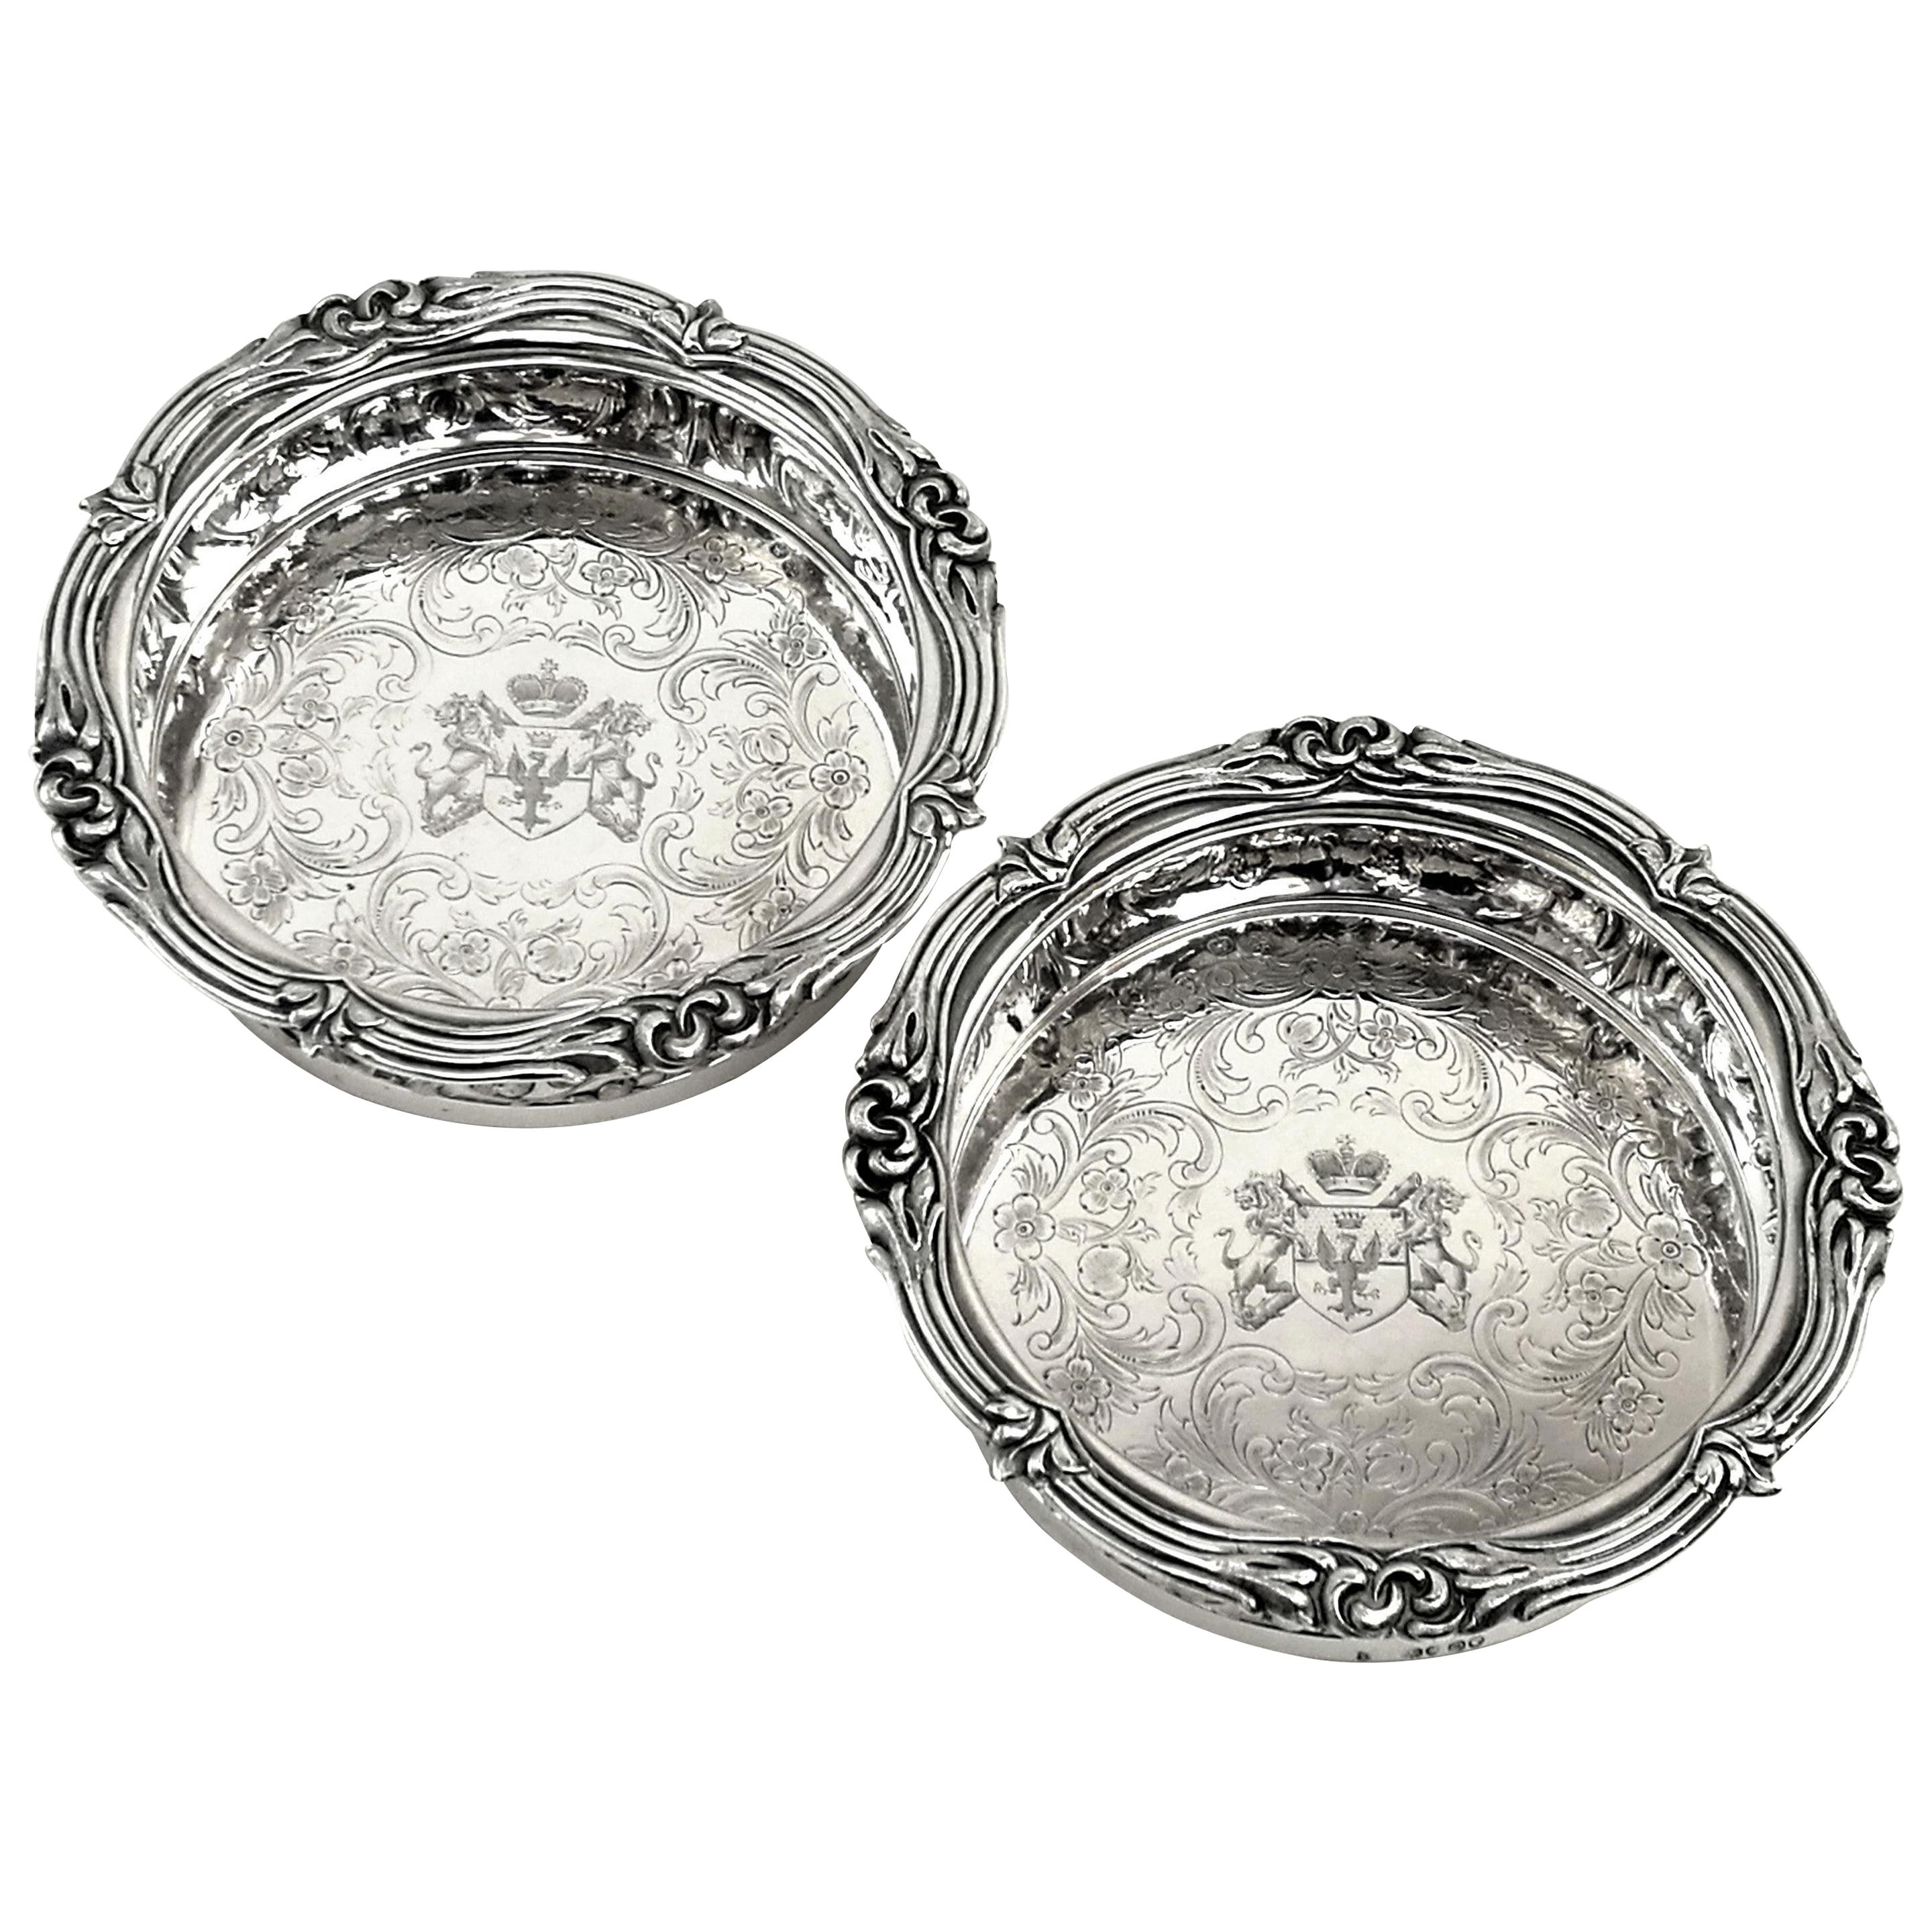 Pair of Antique Victorian Sterling Silver Wine Bottle Coasters 1839